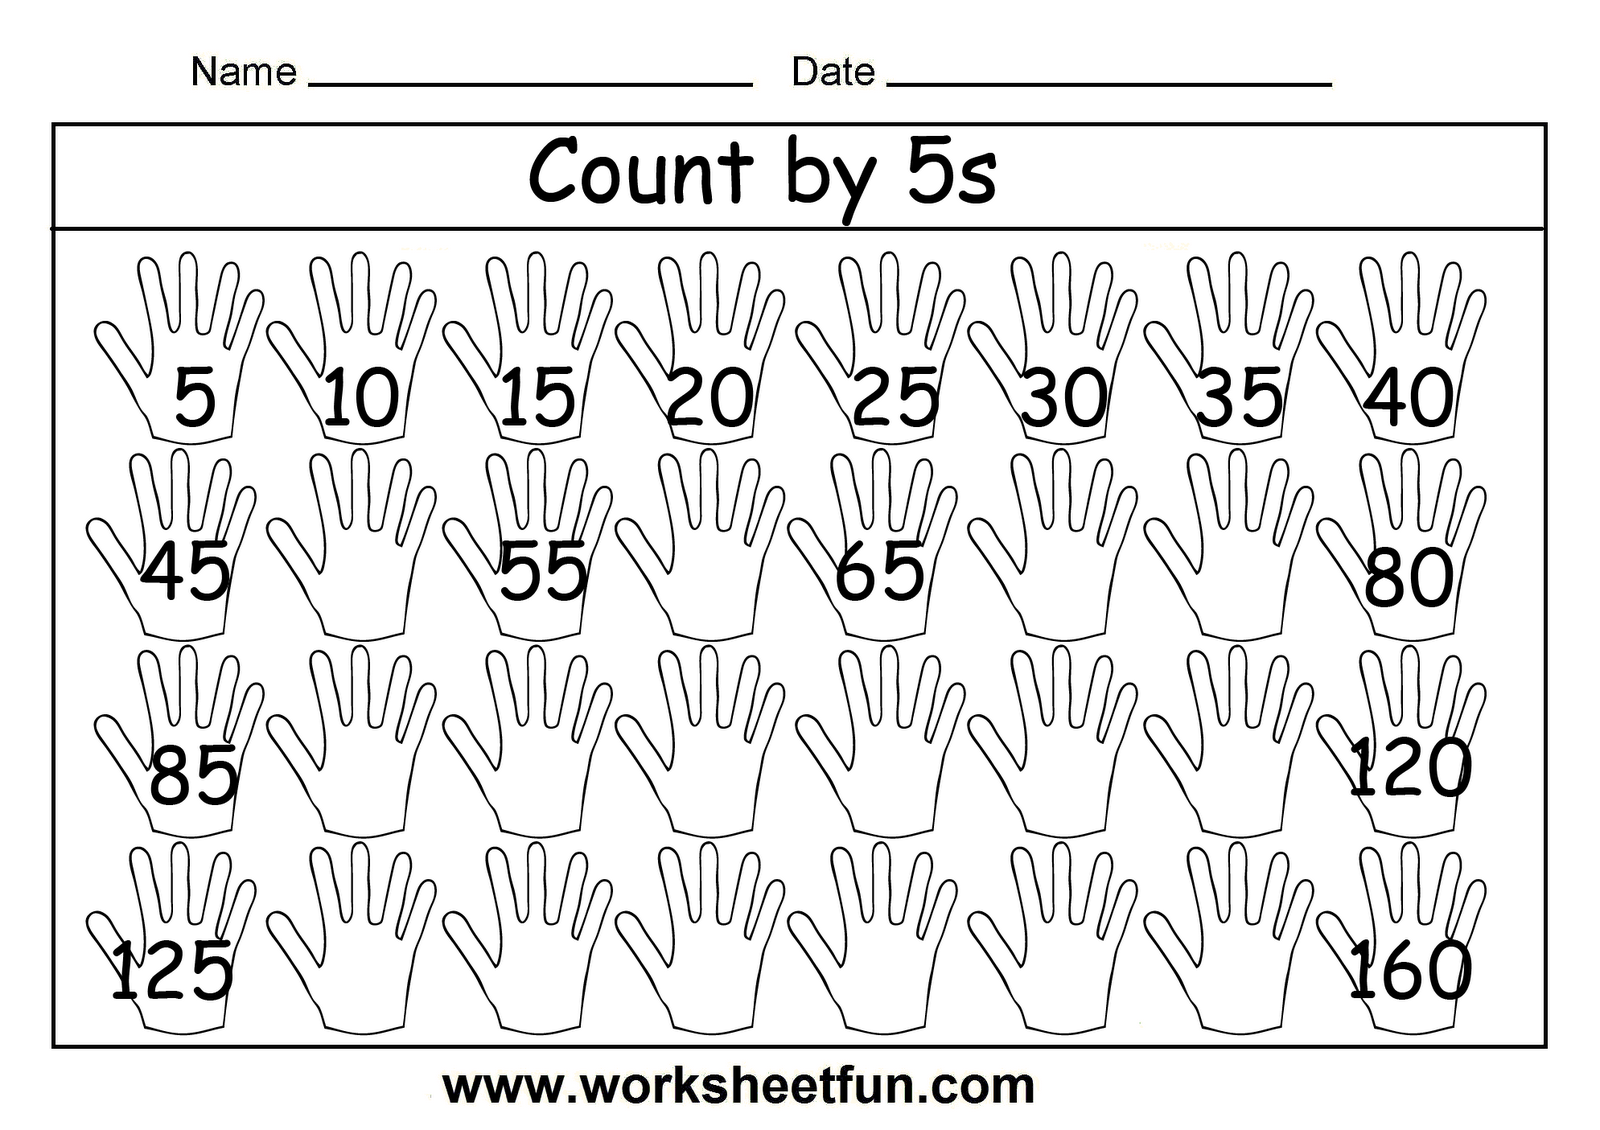 Free Printable Math Worksheets Count By 5s With Images